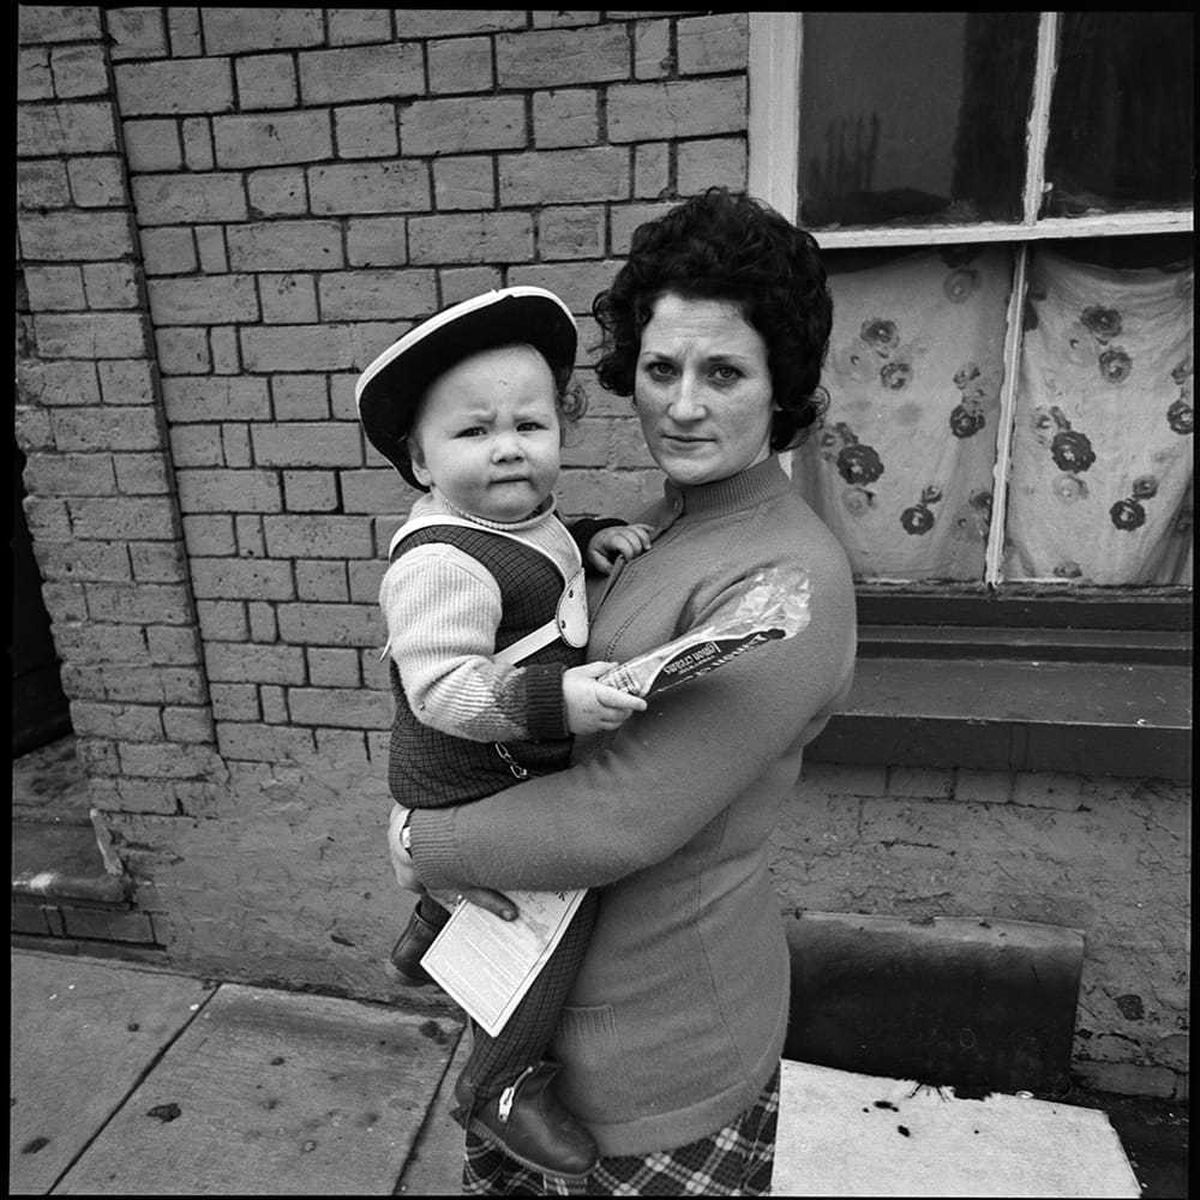 A mother and child - one of George Foster's pictures of North Street in Wolverhampton